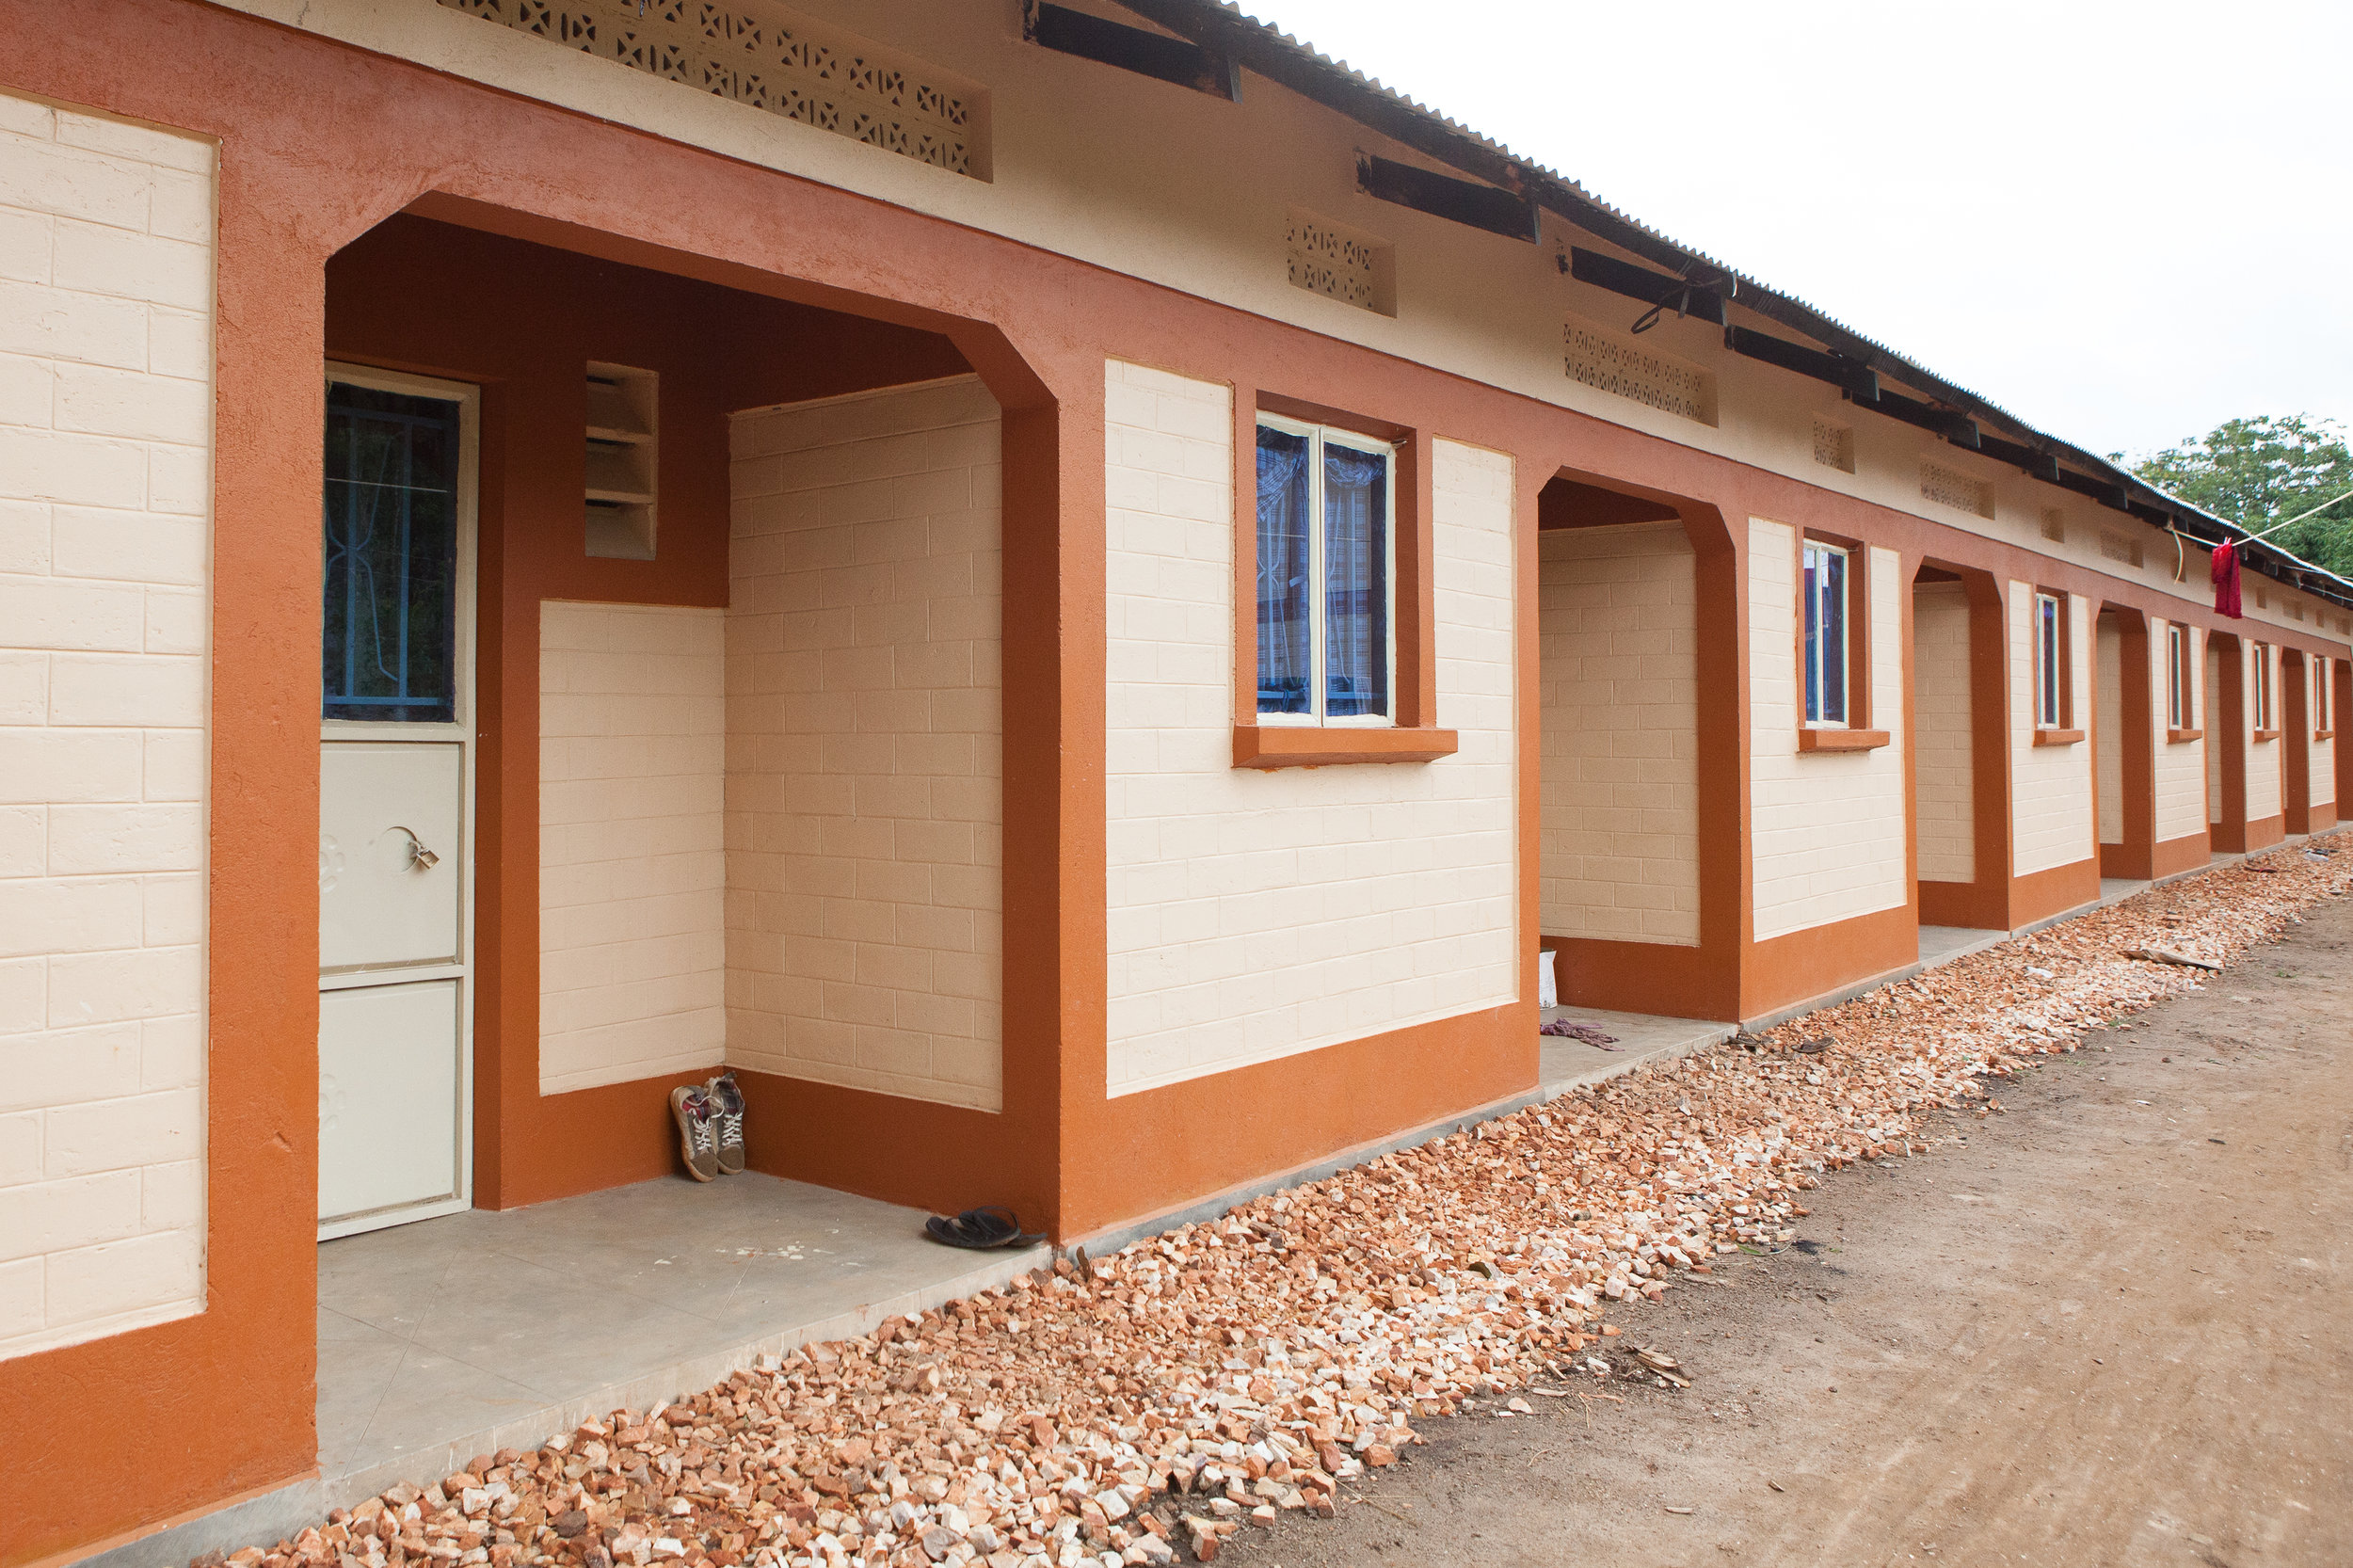 Built 20 new teacher houses to enable us to attract and retain the highest quality teachers.